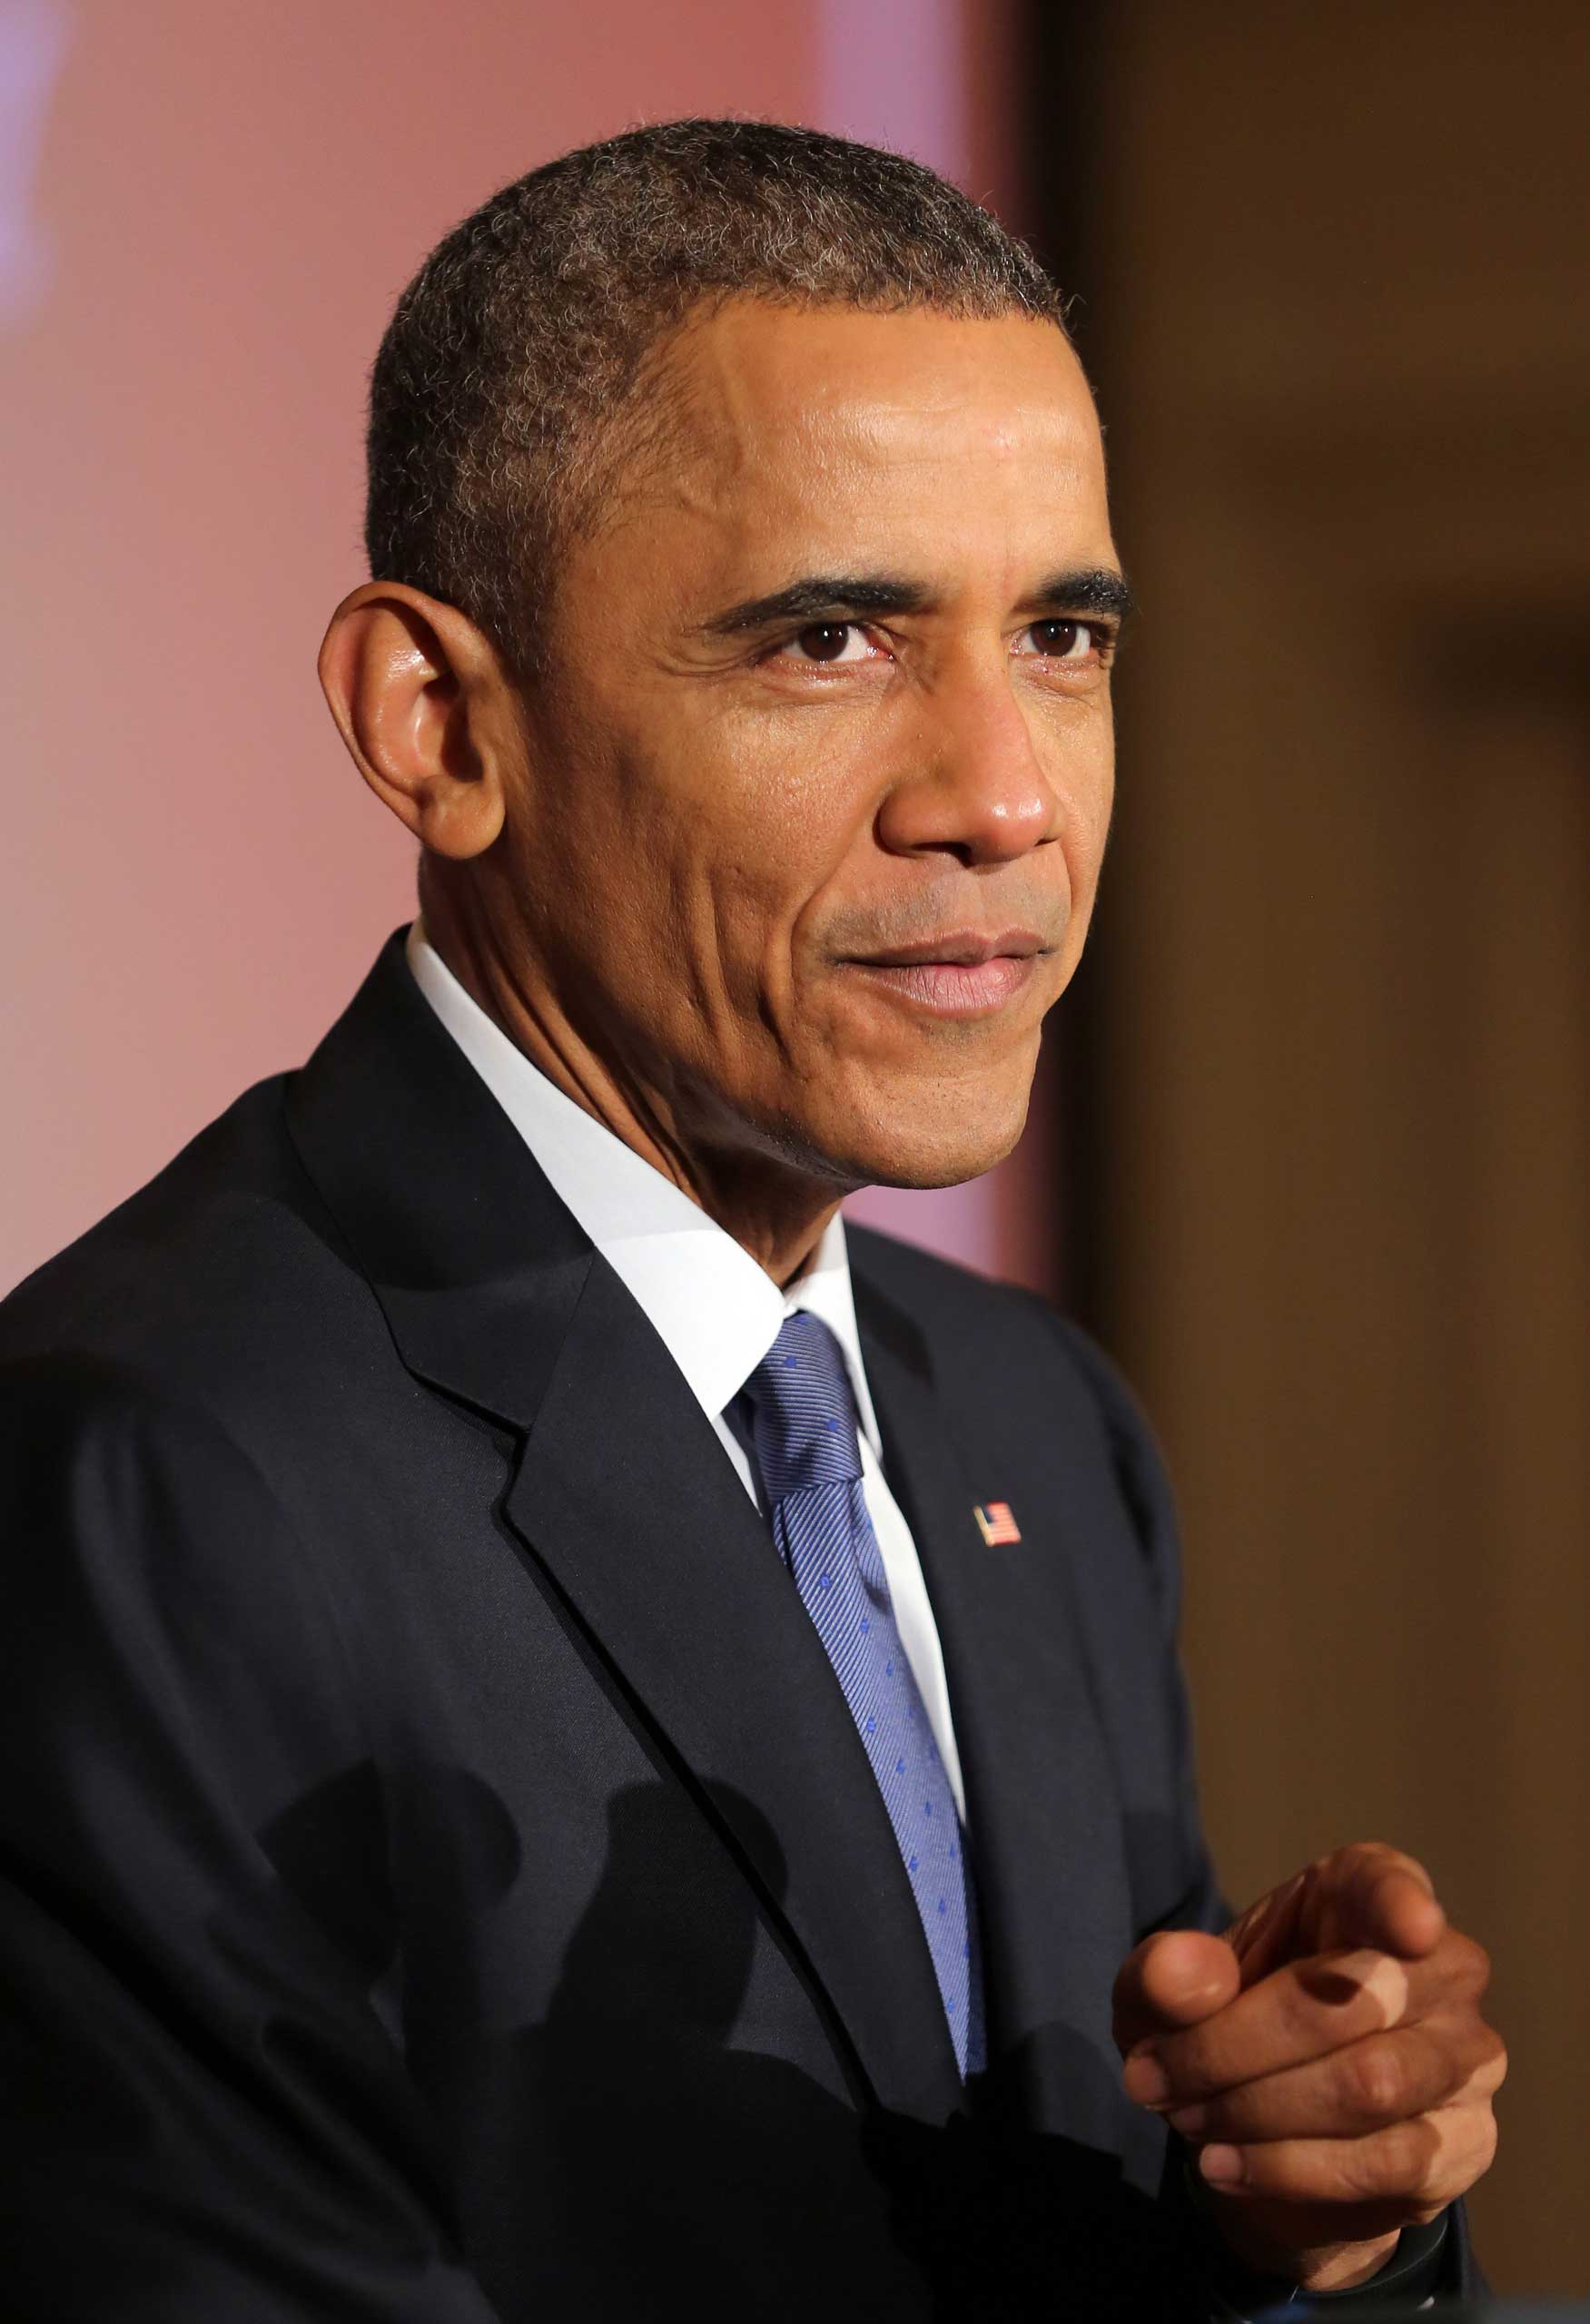 President Barack Obama hosts the second-annual White House Student Film Festival in the East Room of the White House, in Washington on March 20, 2015.